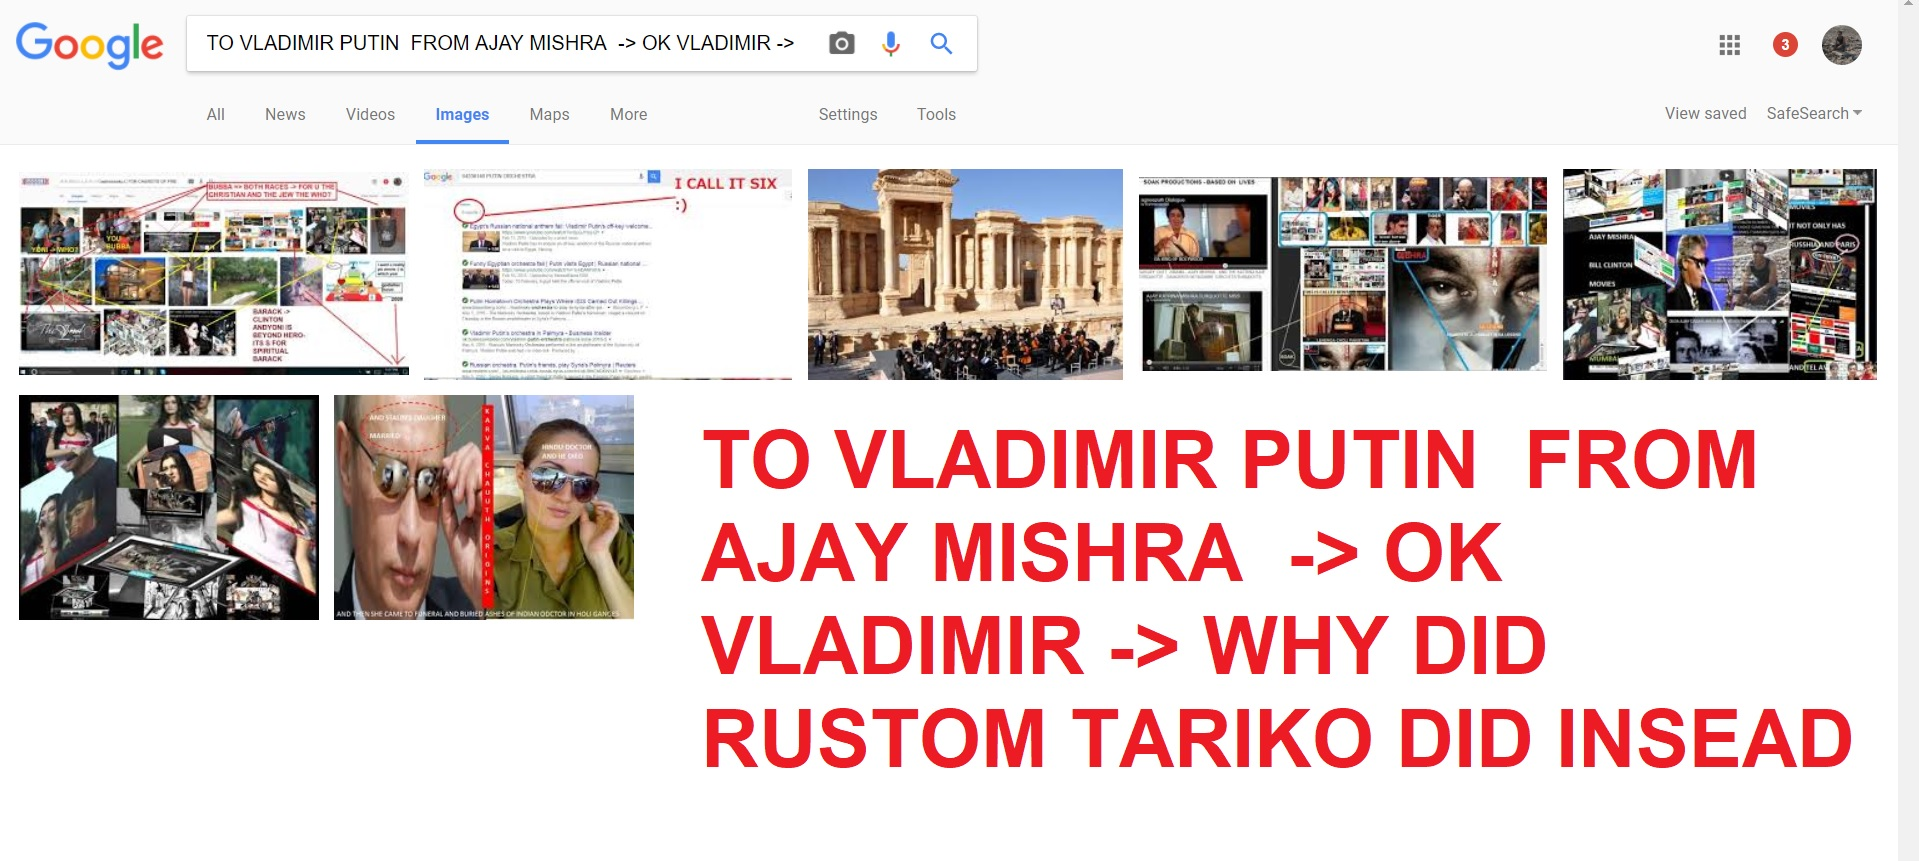 TO VLADIMIR PUTIN FROM AJAY MISHRA OK VLADIMIR WHY DID RUSTOM TARIKO DID INSEAD